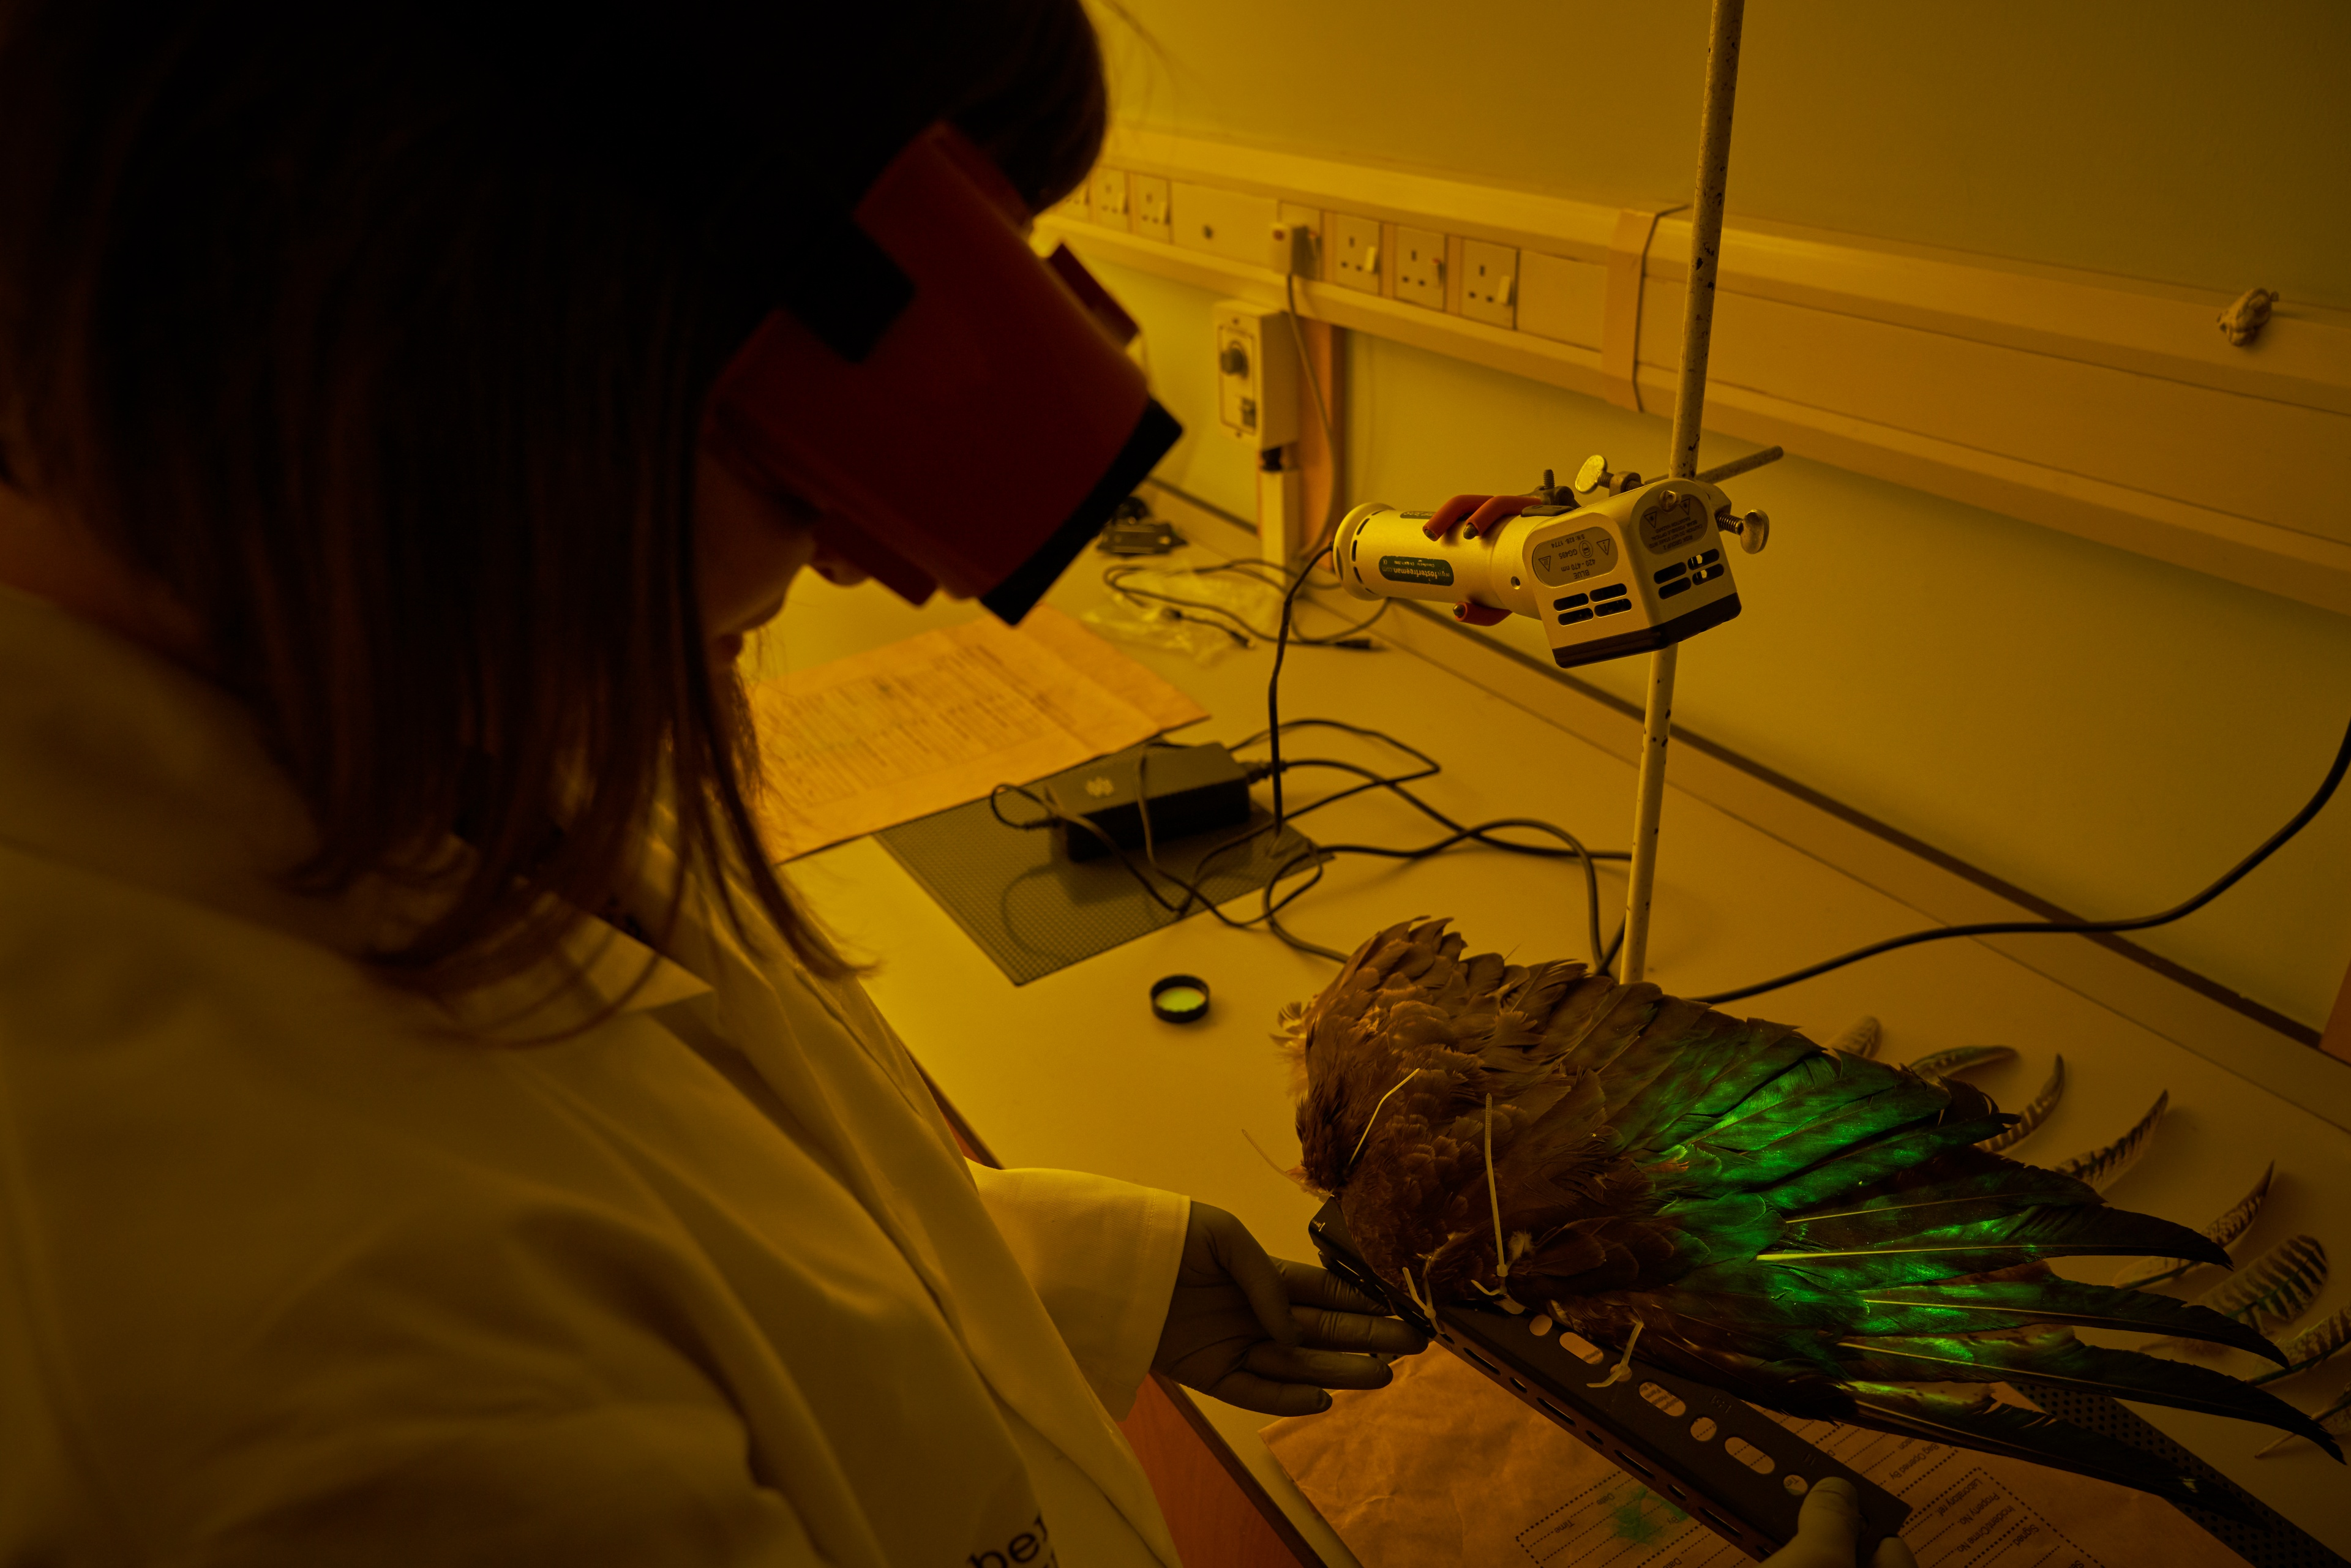 An Abertay University study has discovered that fingerprints can be recovered from bird feathers, even if they have been left outside and exposed to environmental conditions. The research could lead to breakthroughs in the investigation of wildlife crime.